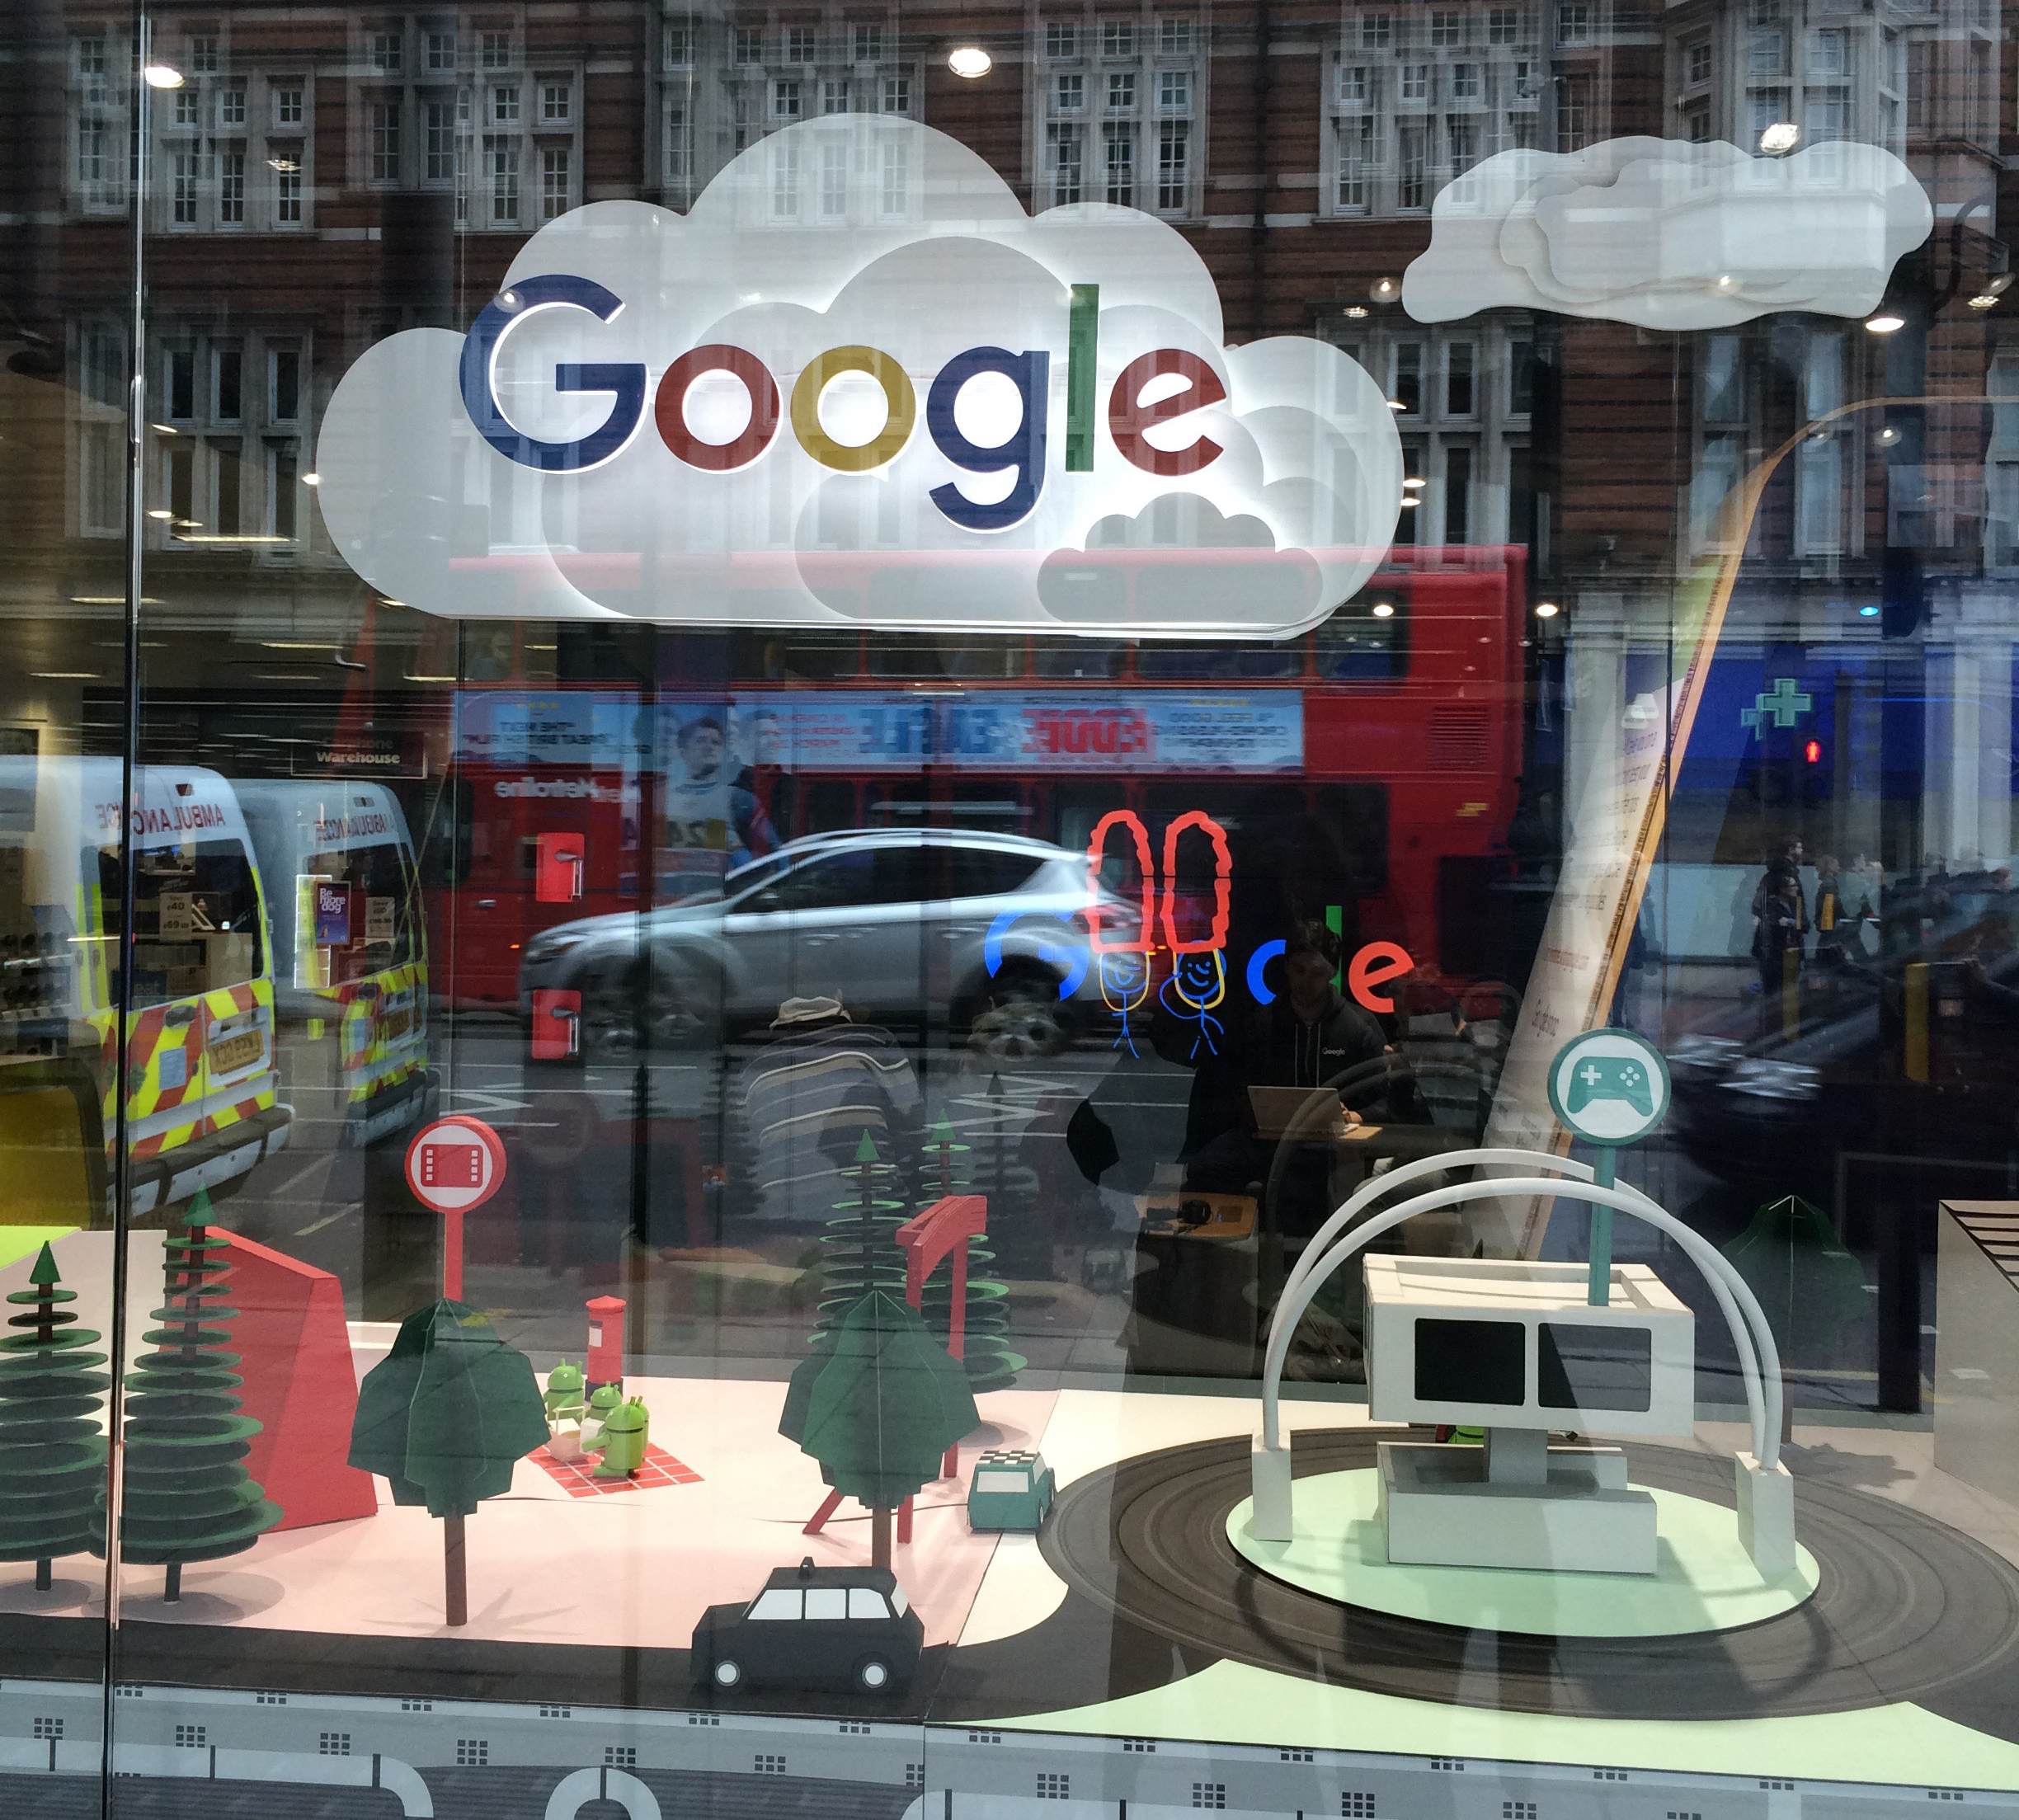 Google Illuminated display